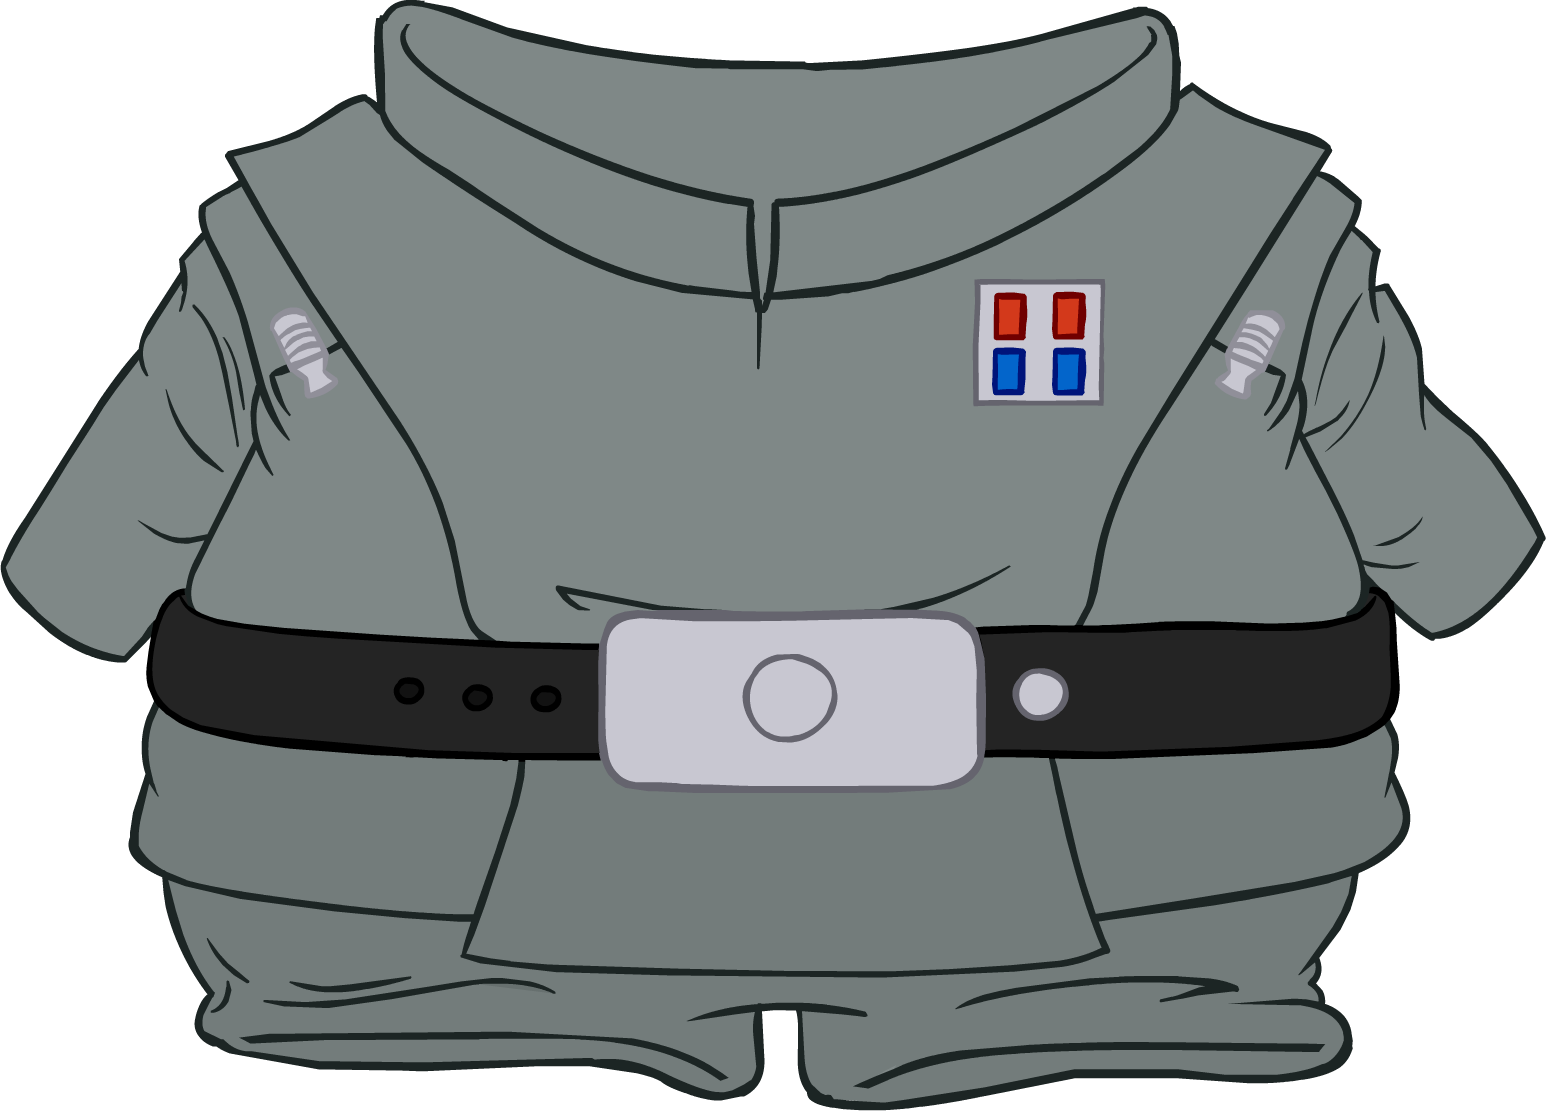 Voting clipart club officer. Imperial uniform penguin wiki